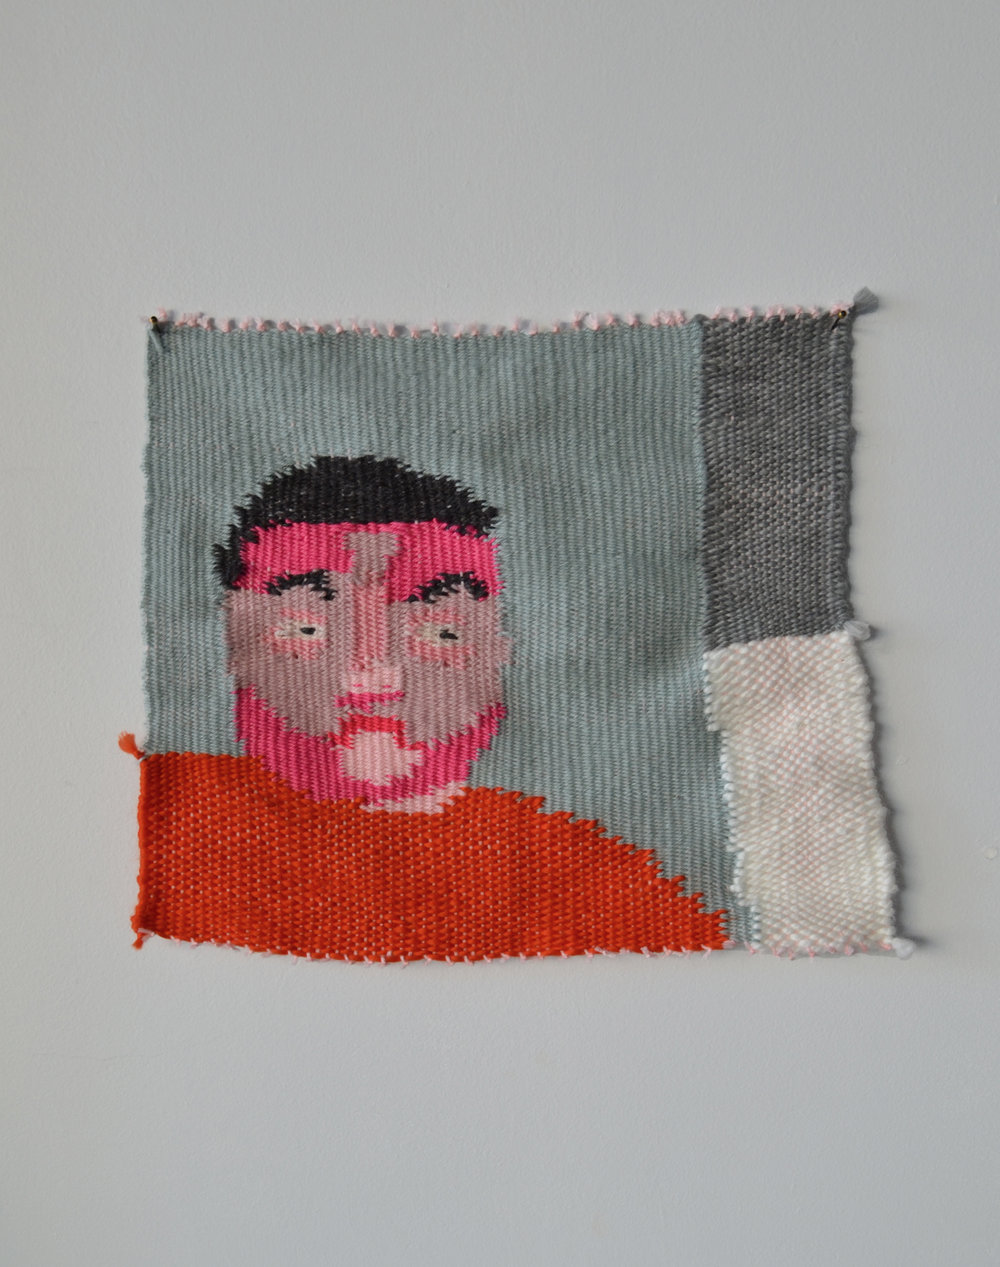 Slow Portrait of niceguymax  2016 Wool and Acrylic Yarn